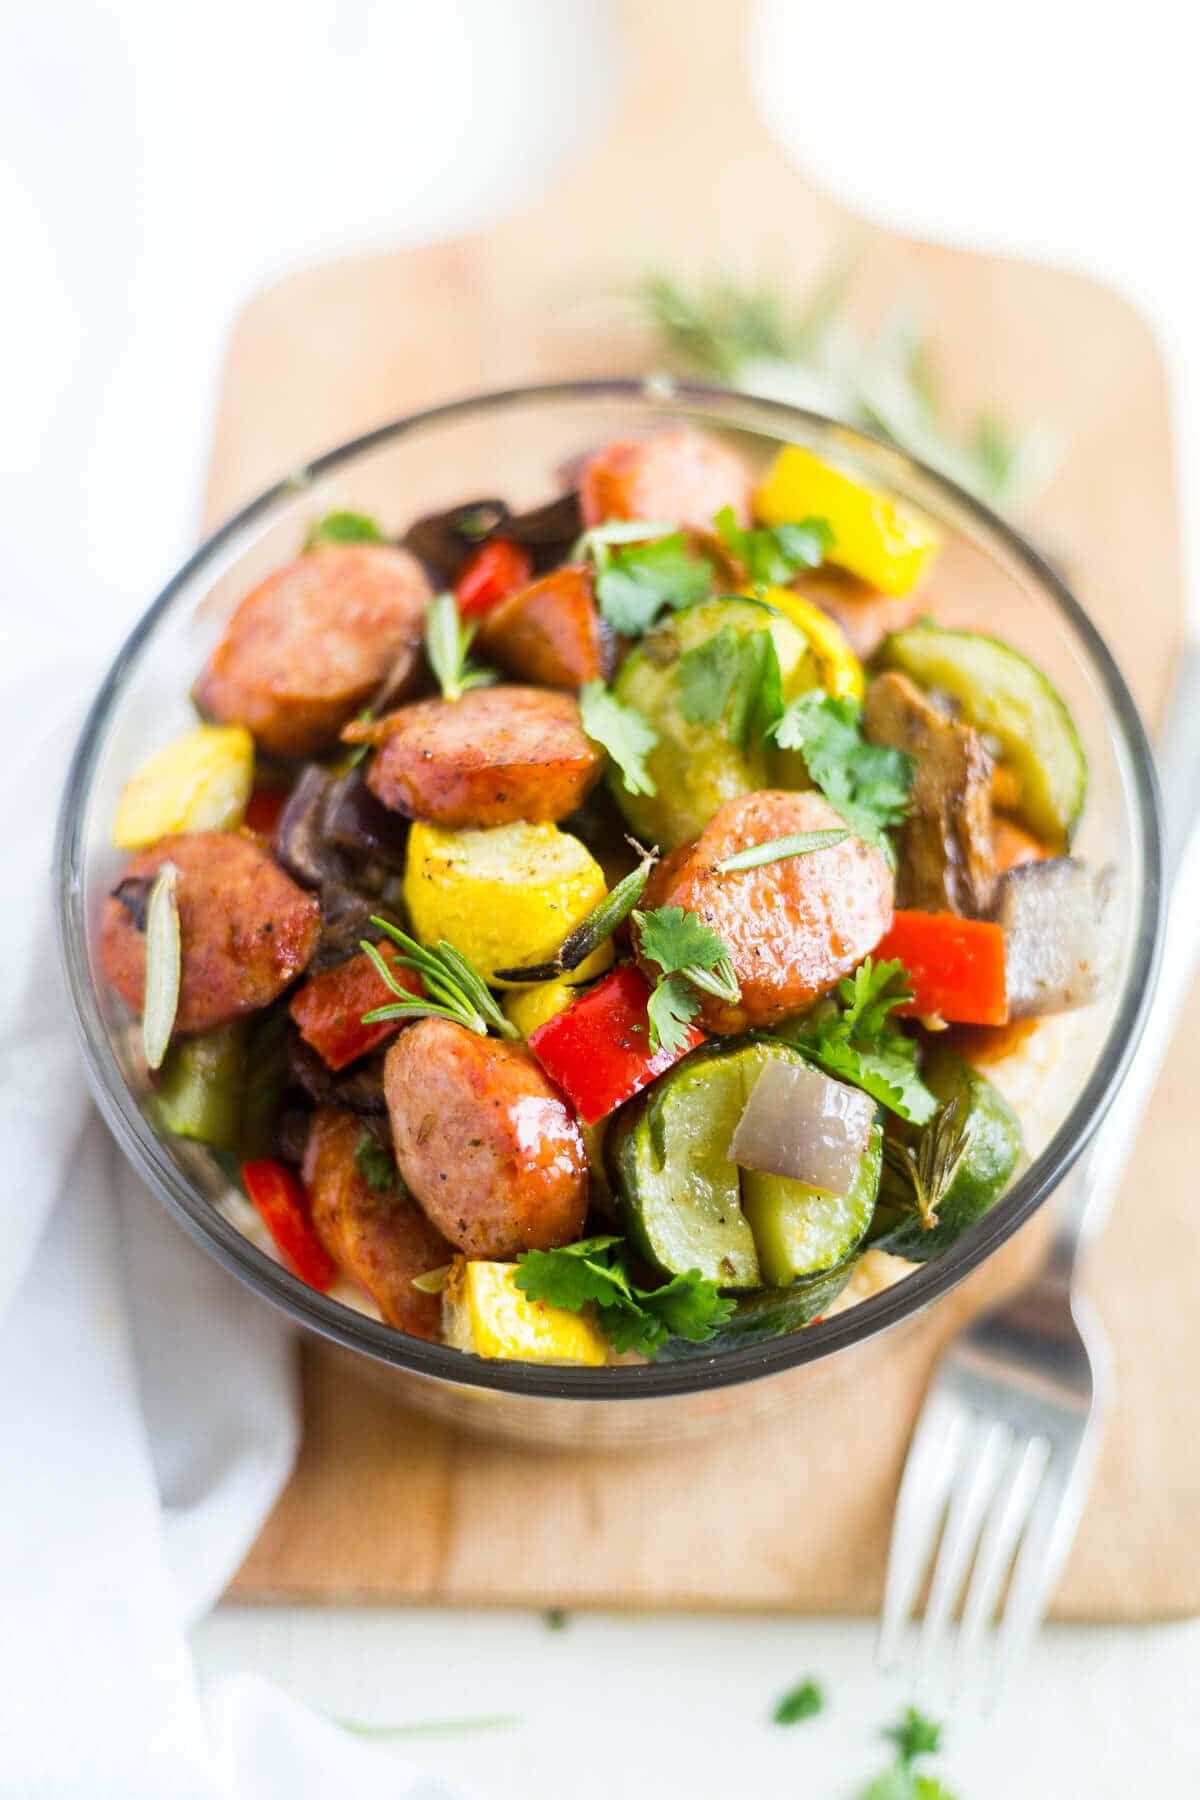 sausage and veggies bowl